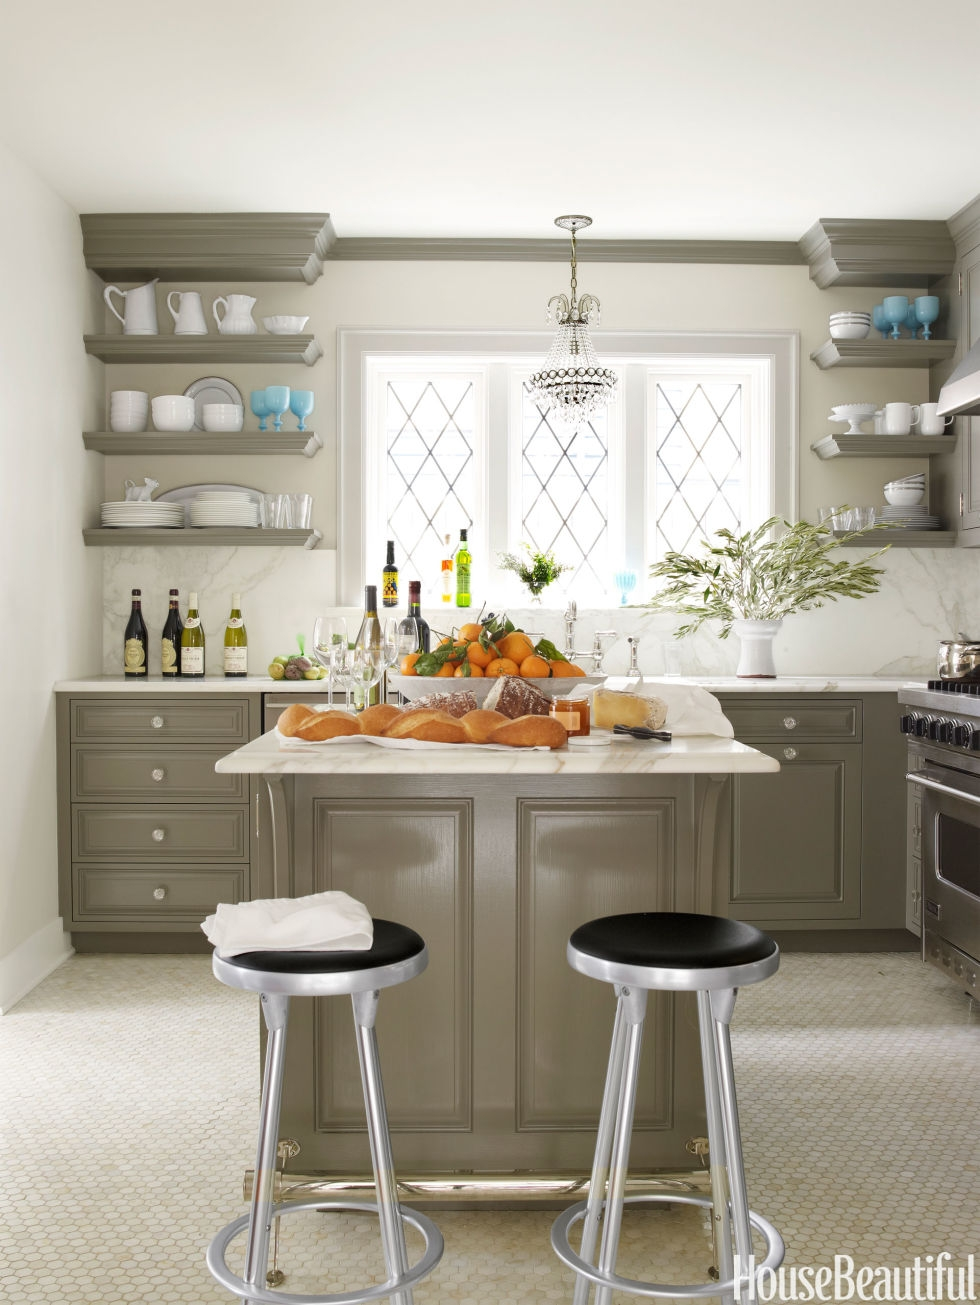 New Colors For Kitchen Cabinets